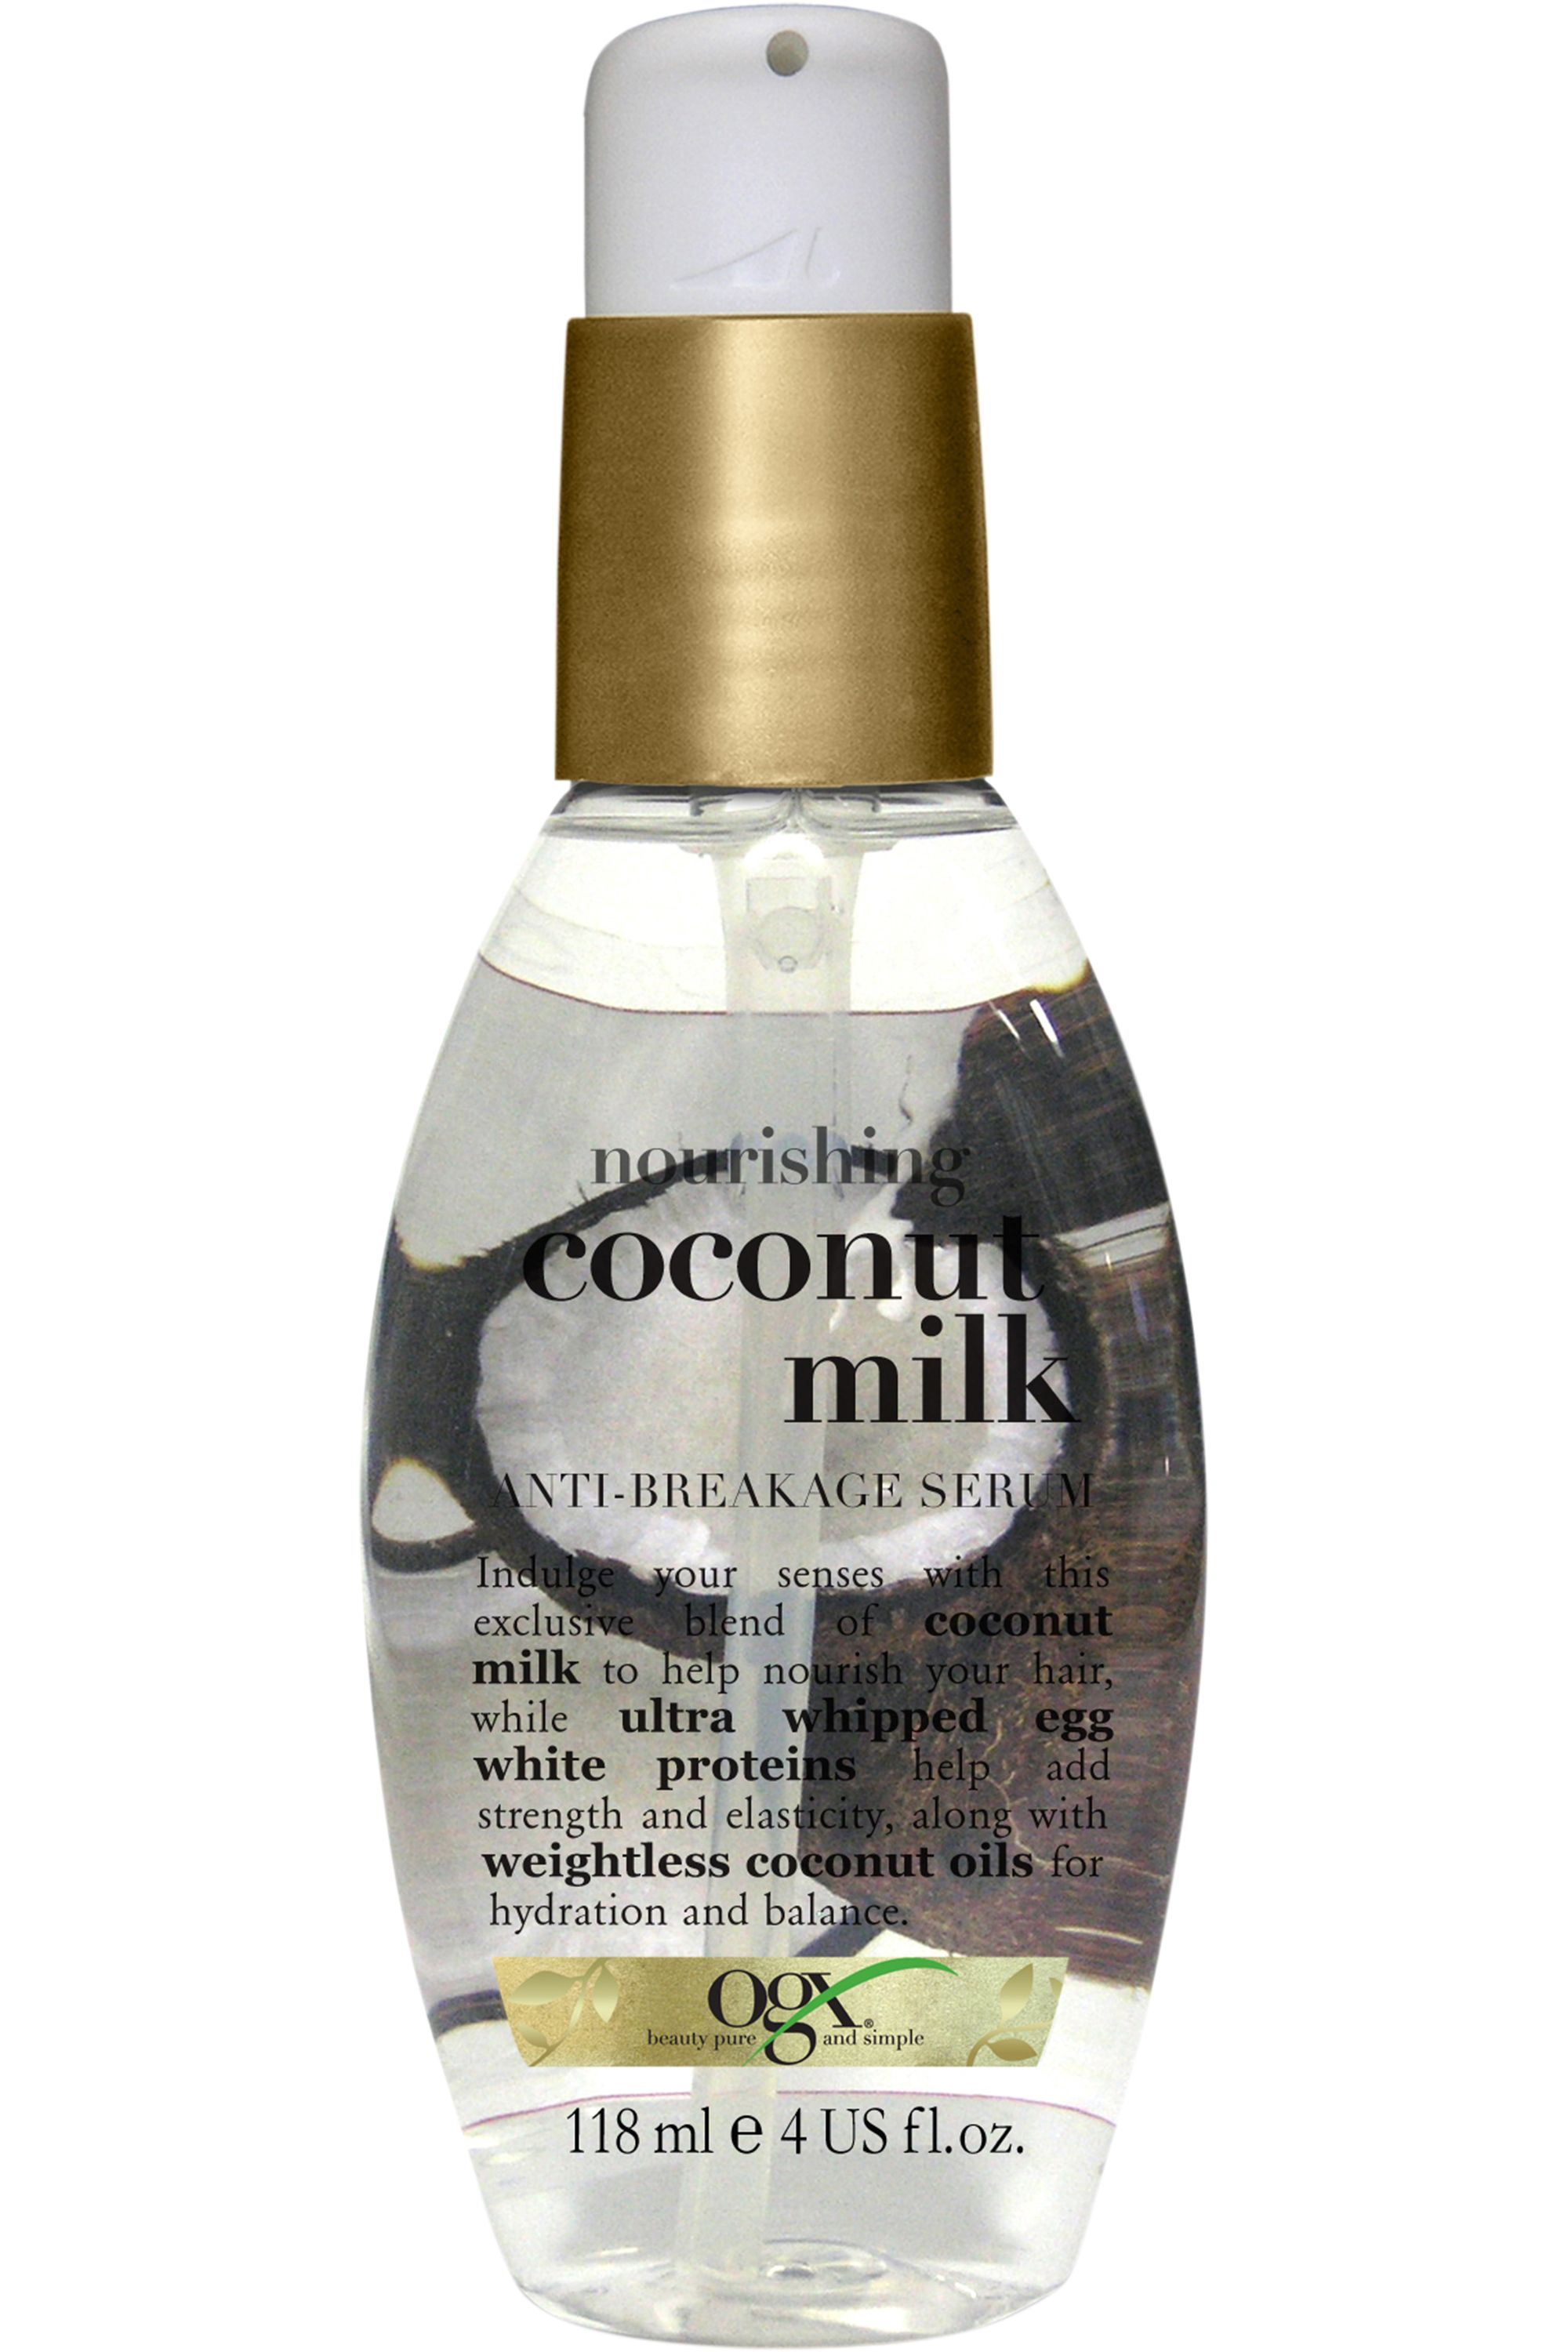 Blissim : OGX - Sérum anti-casse Coconut Milk - Sérum anti-casse Coconut Milk